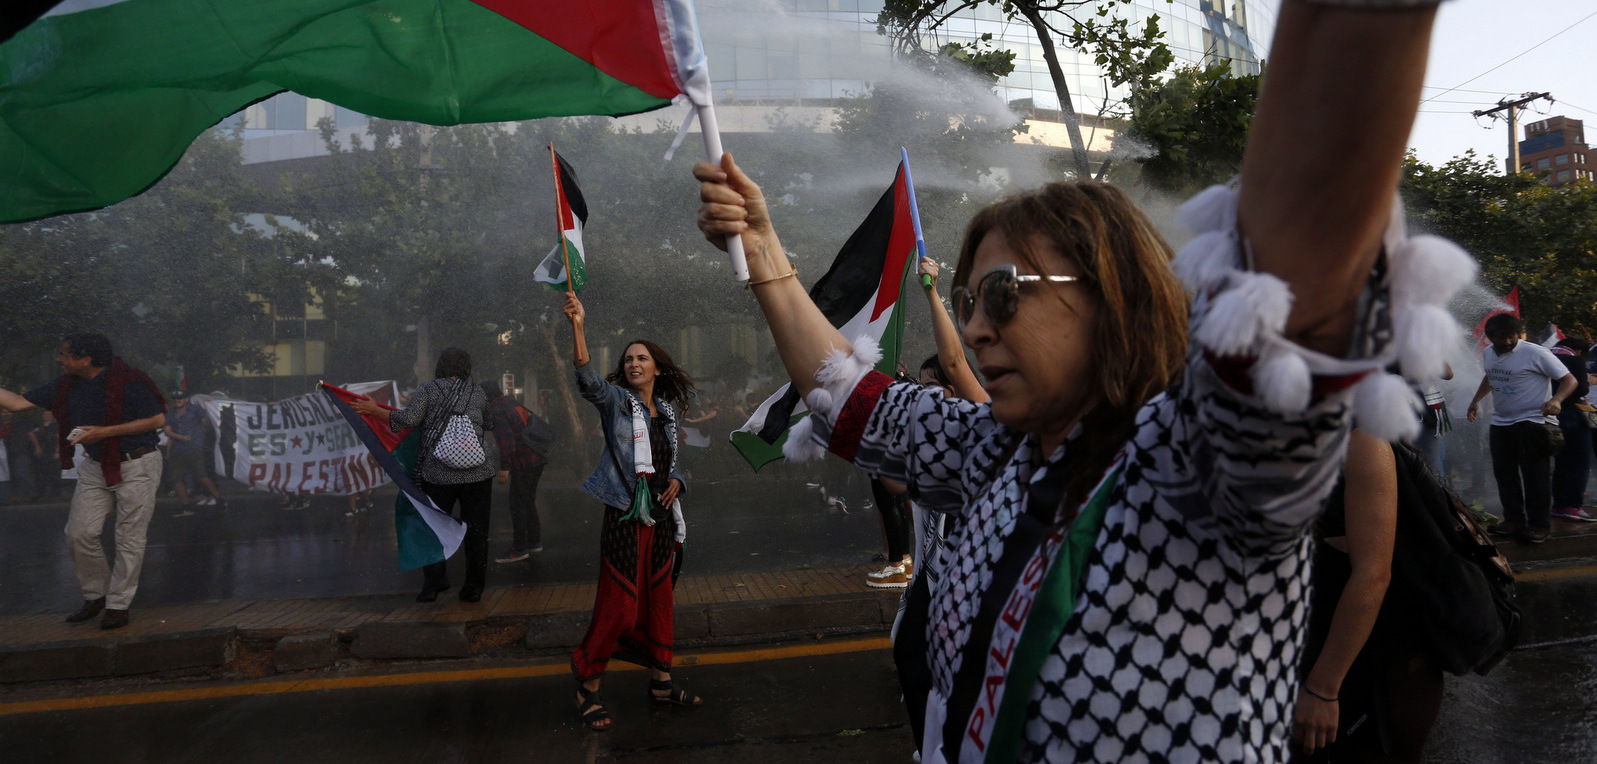 People protest U.S. President Donald Trump's decision to recognize Jerusalem as Israel's capital, outside the U.S. Embassy in Santiago, Chile, Monday, Dec. 11, 2017. The protest was organized by the Palestinian community in Chile. (AP Photo/Luis Hidalgo)